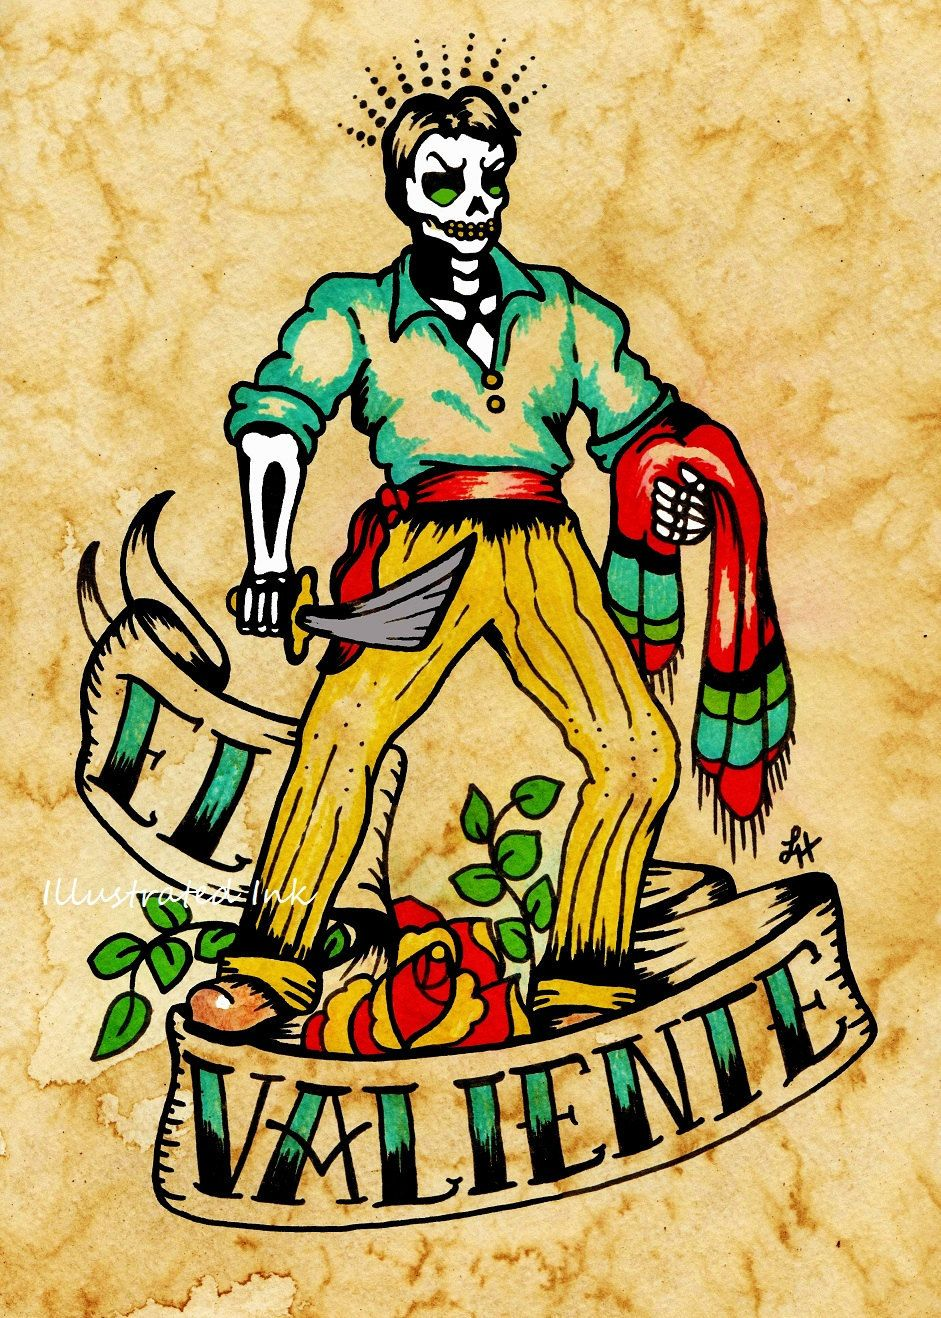 el valiente designs posters pinterest tattoo mexico tattoo and traditional tattoo. Black Bedroom Furniture Sets. Home Design Ideas